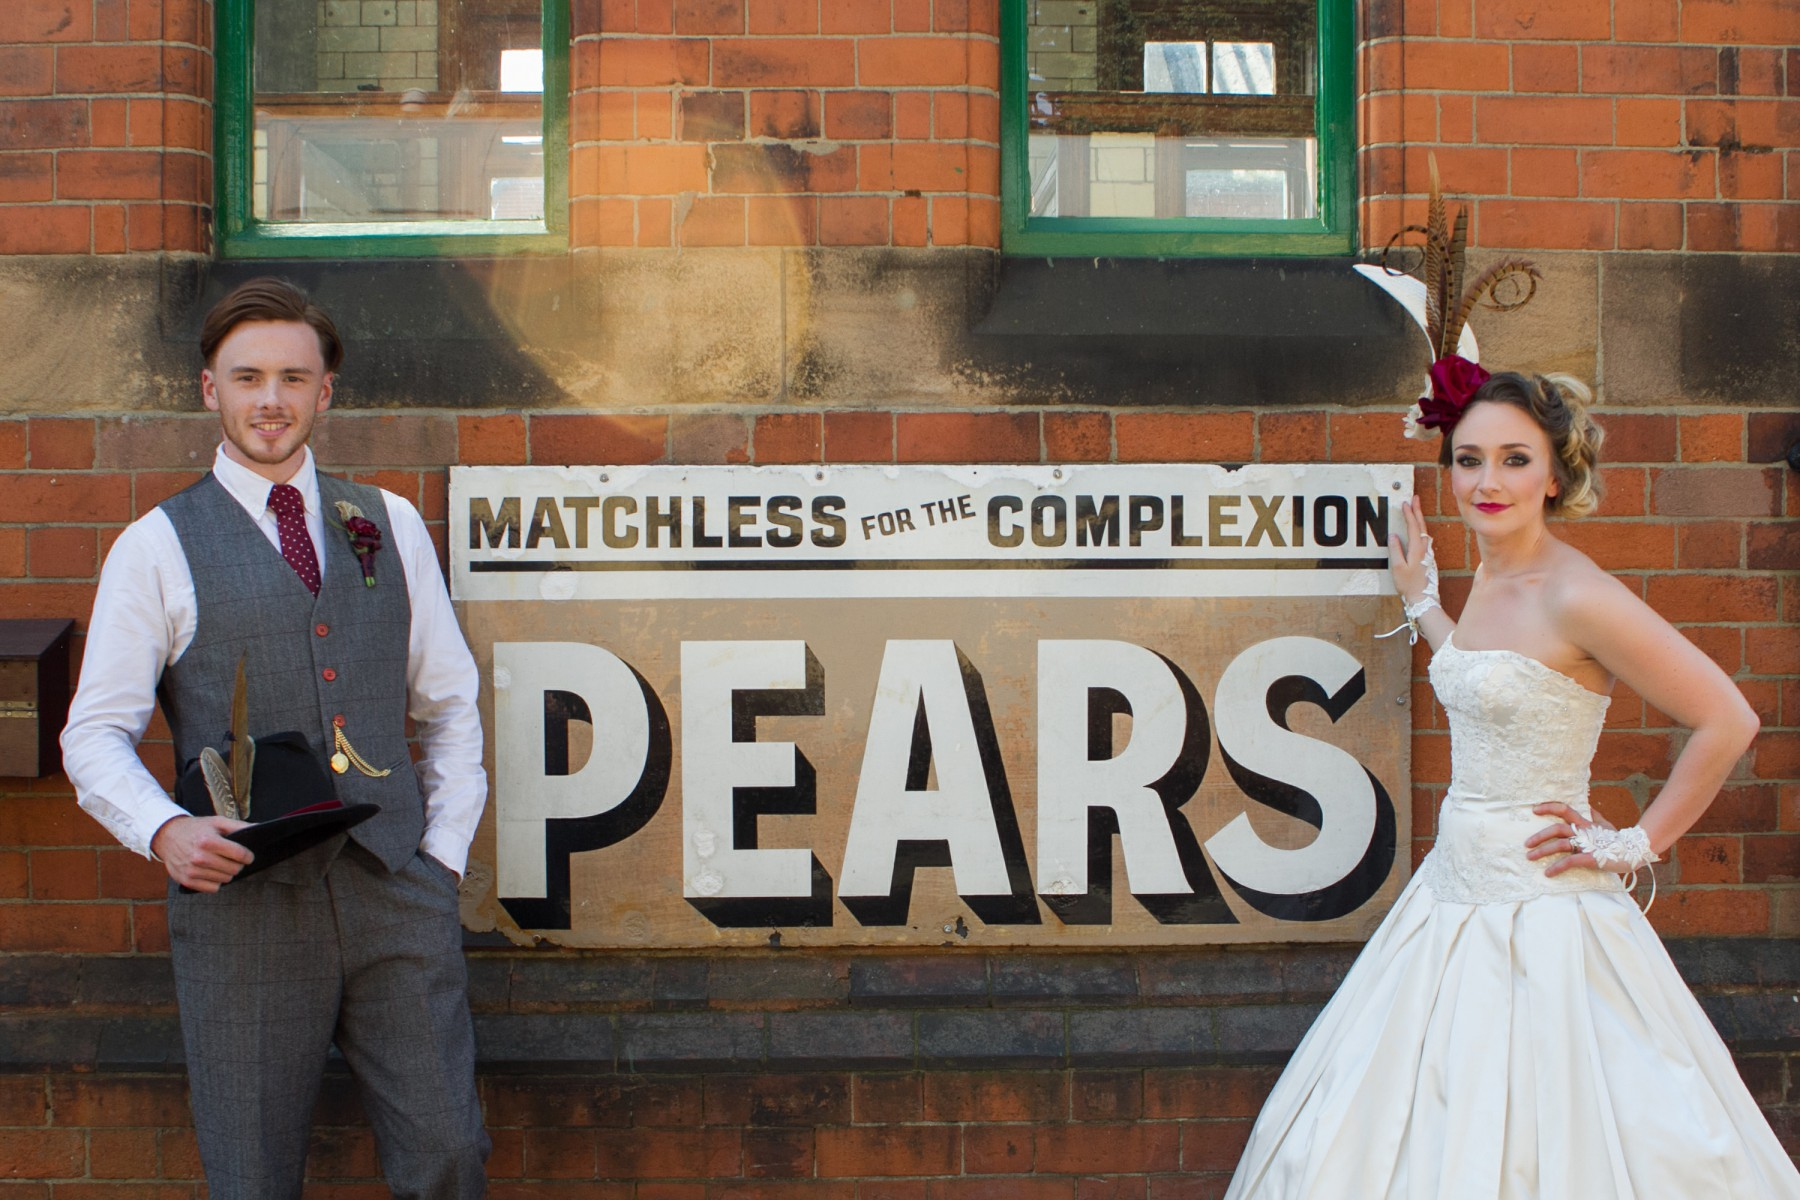 Iso Elegant Photography - Leicester wedding network - Railway wedding - vintage wedding 38